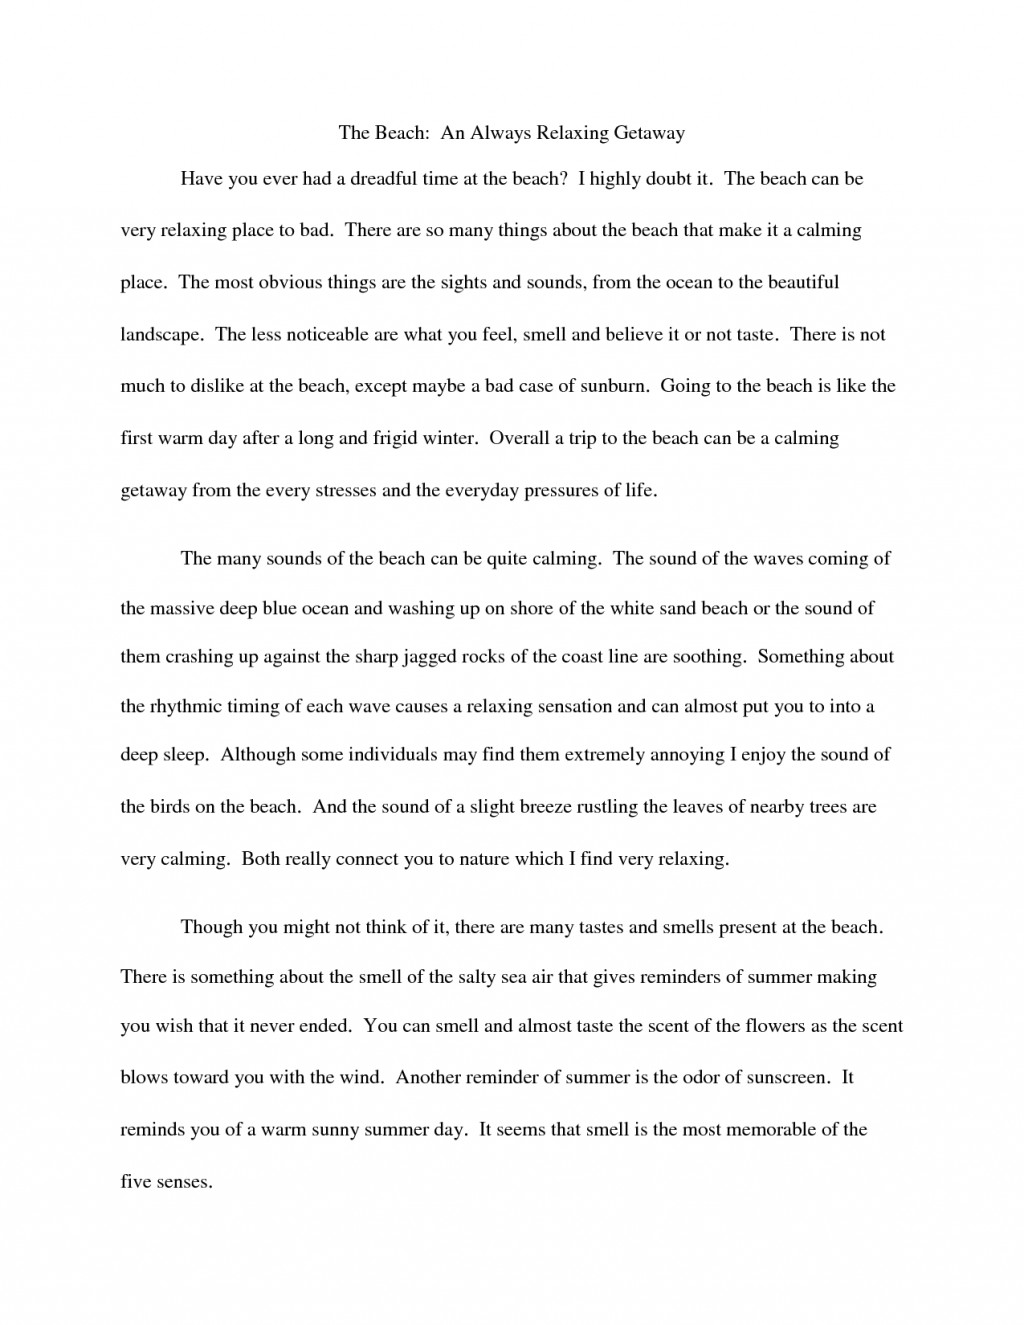 003 Descriptive Beach Essays College That Stand Out Essay Example Odvqltnc Short On The Sunset Paper Barefoot About Walk Vacation Narrative At Night Free Walking Examples Unusual Of Pdf A Person Painting Picture Large